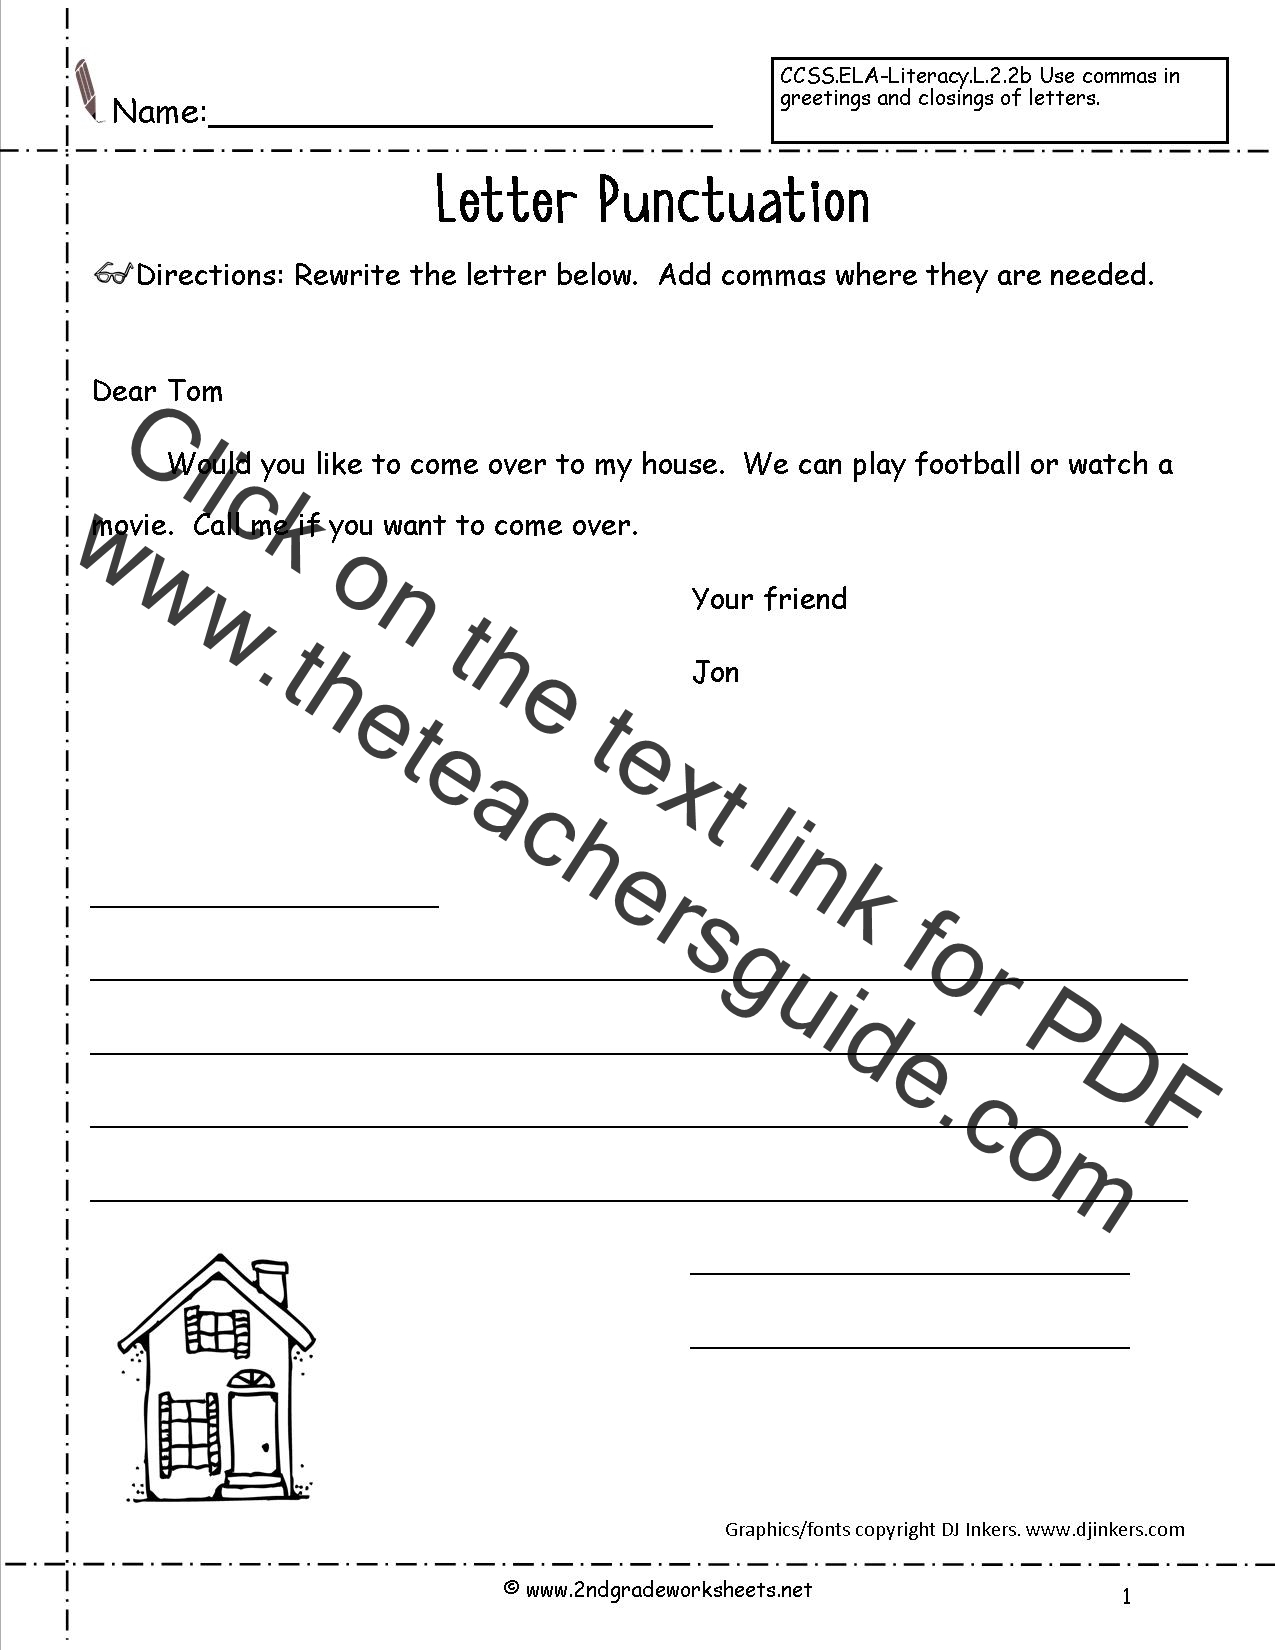 Worksheets Punctuation Practice Worksheets letters and parts of a letter worksheet friendly punctuation